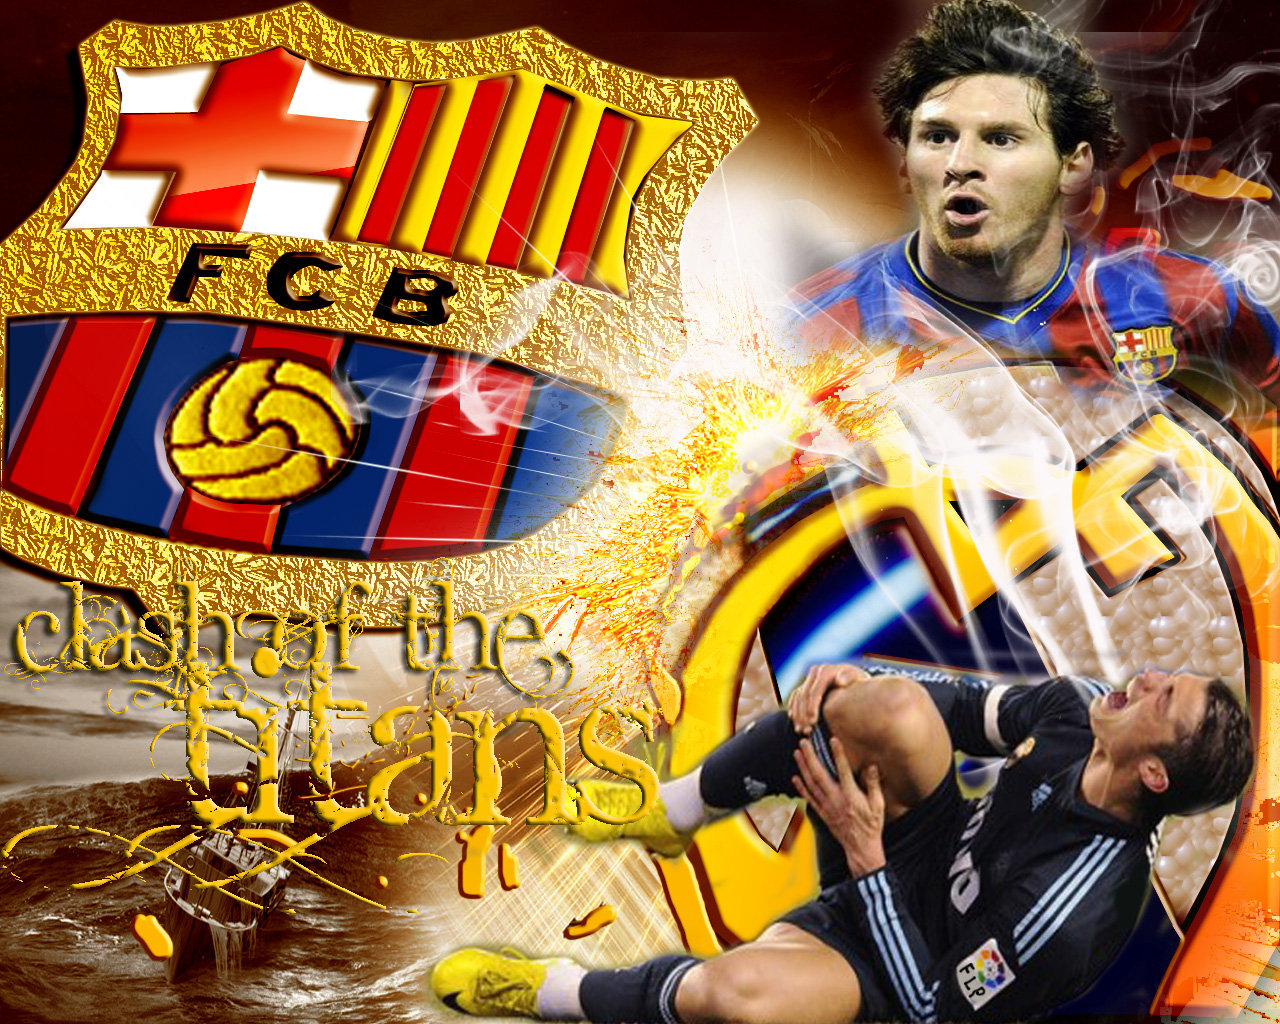 Fc Barcelona Vs Real Madrid Wallpaper BarcelonaWallpaper Barcelona 1280x1024